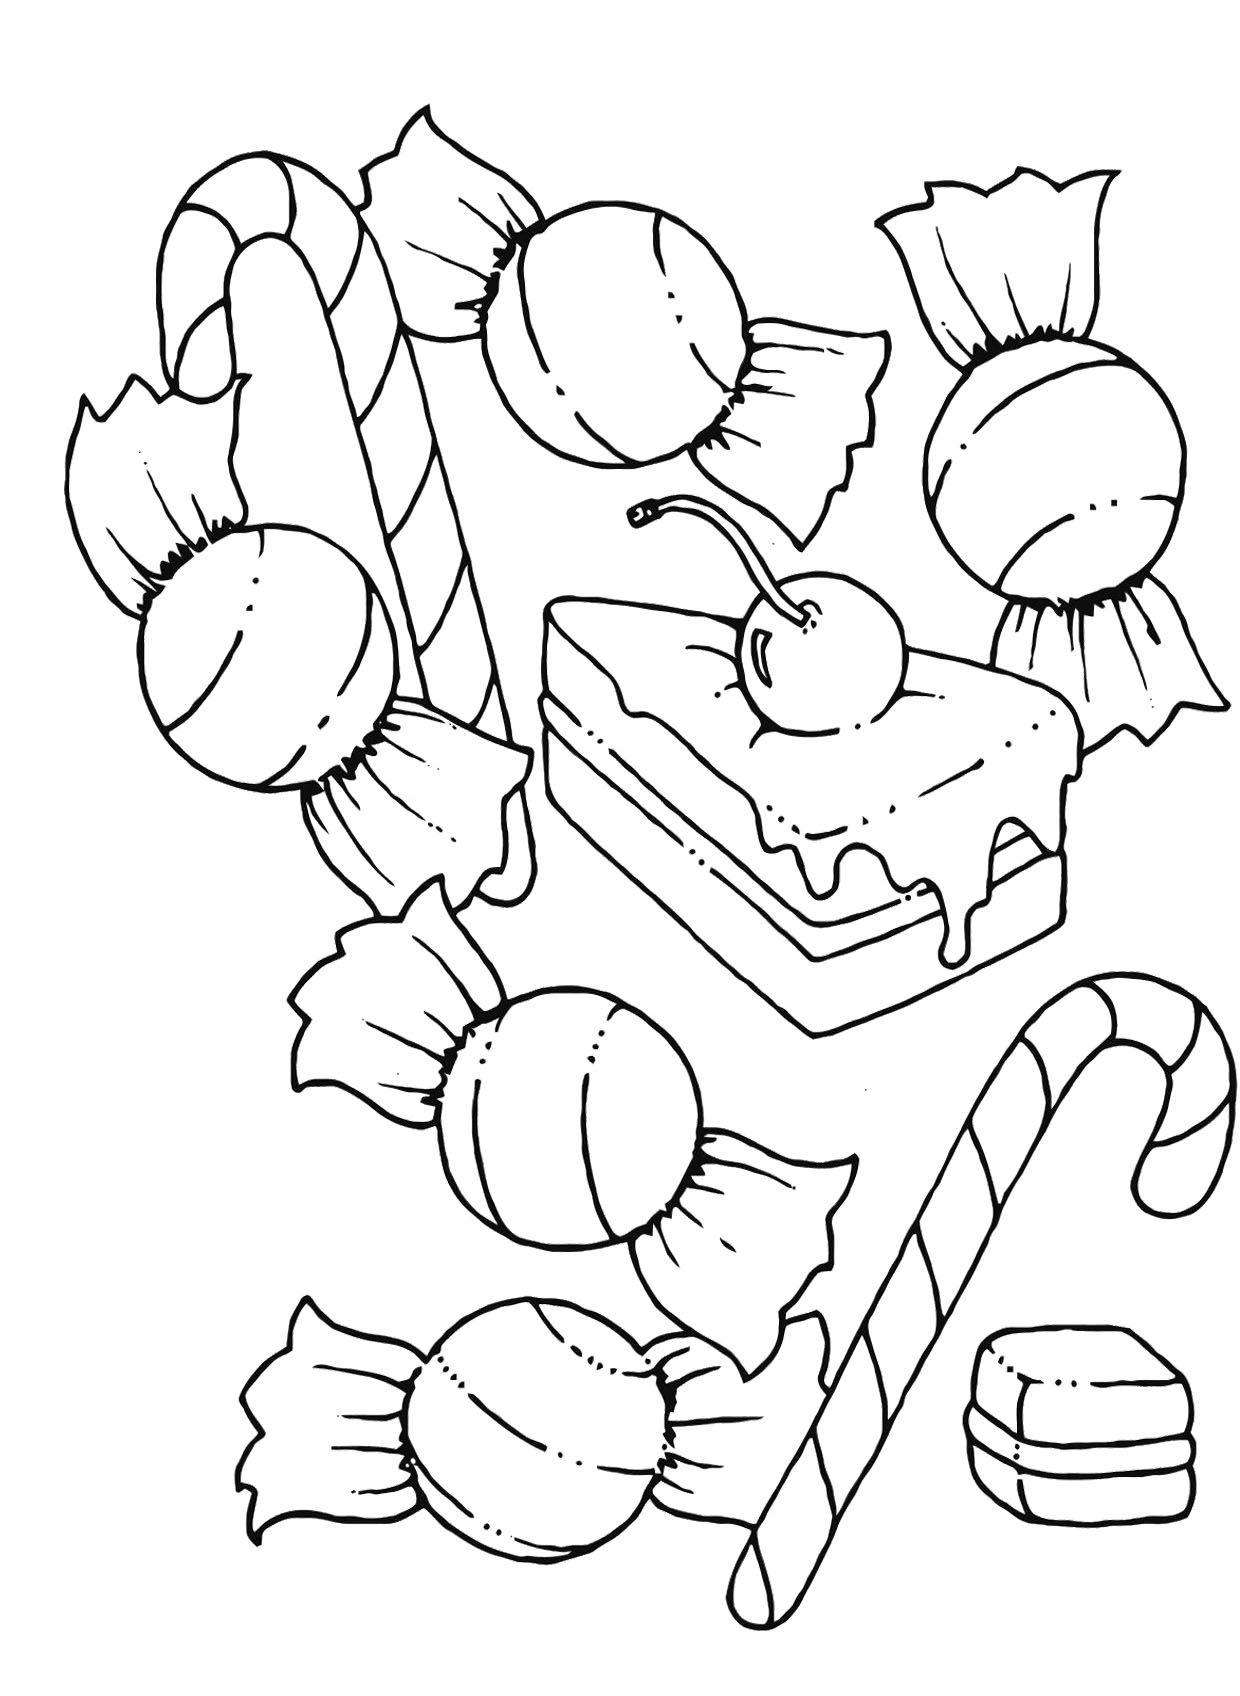 a collection of delicious candy coloring pages - Candy Coloring Sheets